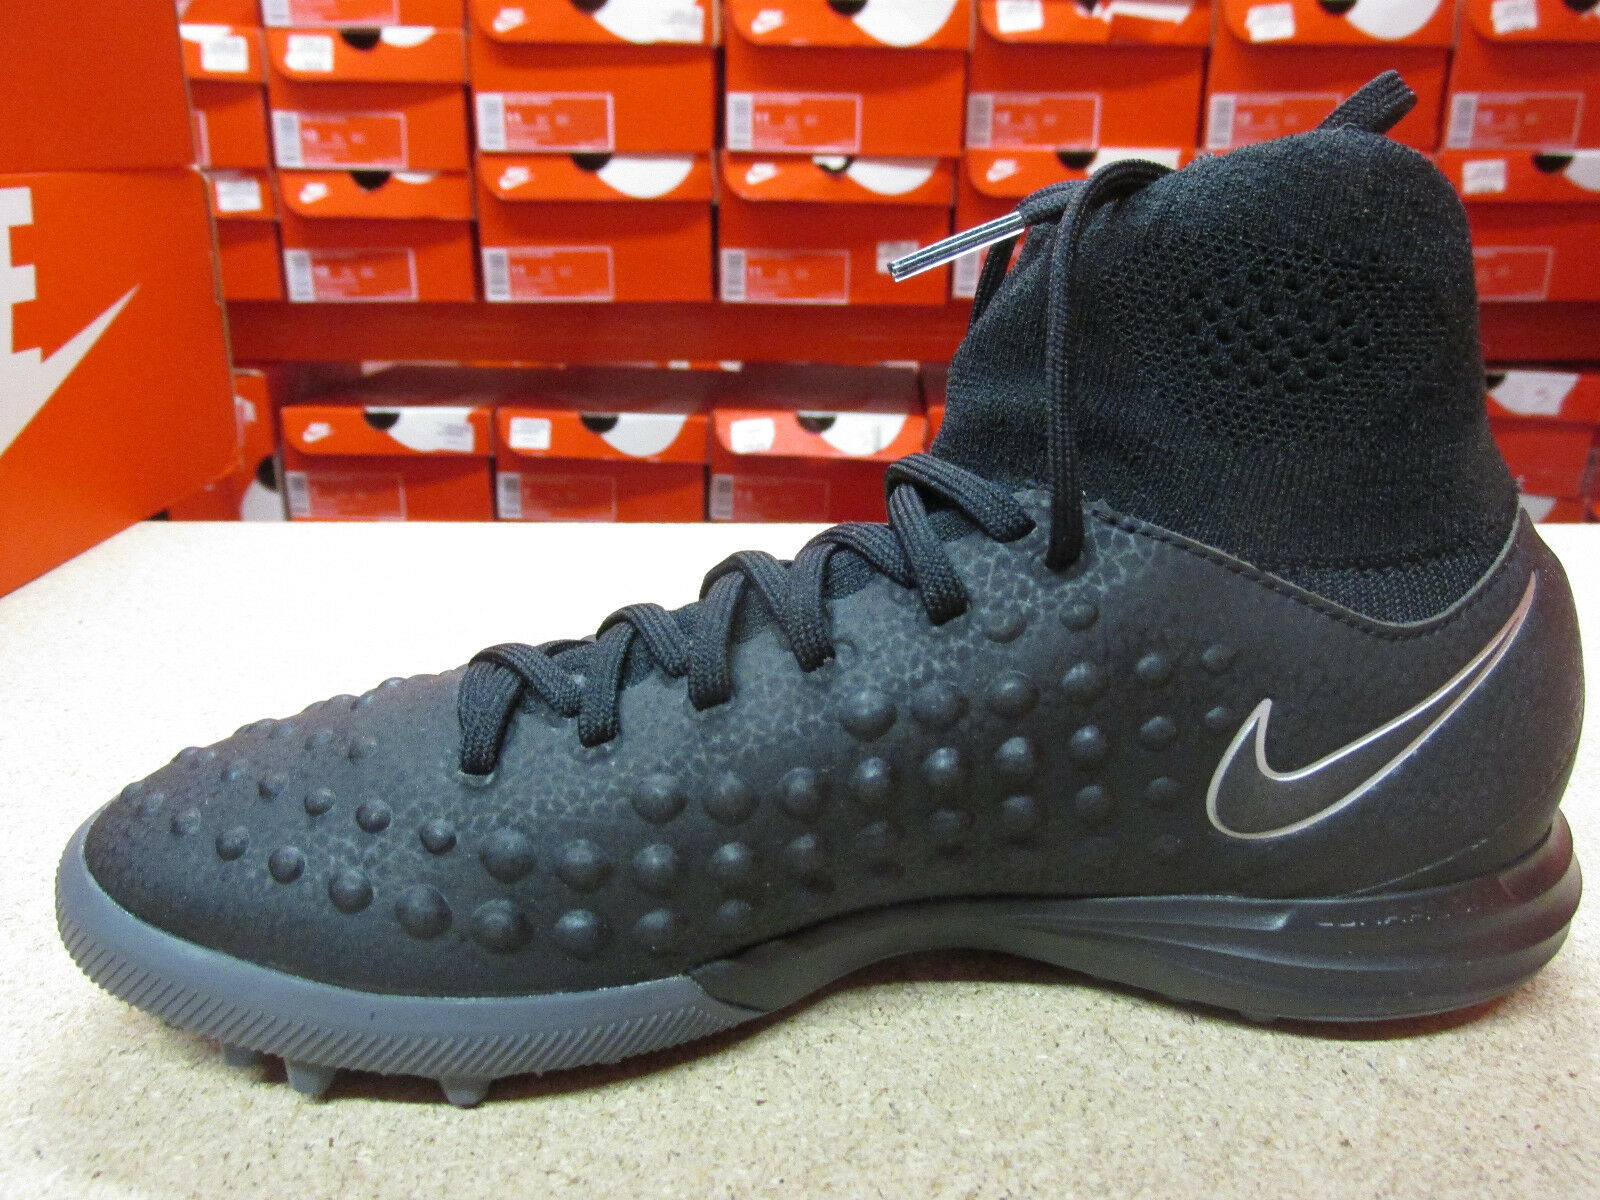 Nike Junior MagistaX Proximo II TF Football Bottes chaussures 843956 009 Soccer  chaussures Bottes e4de4c